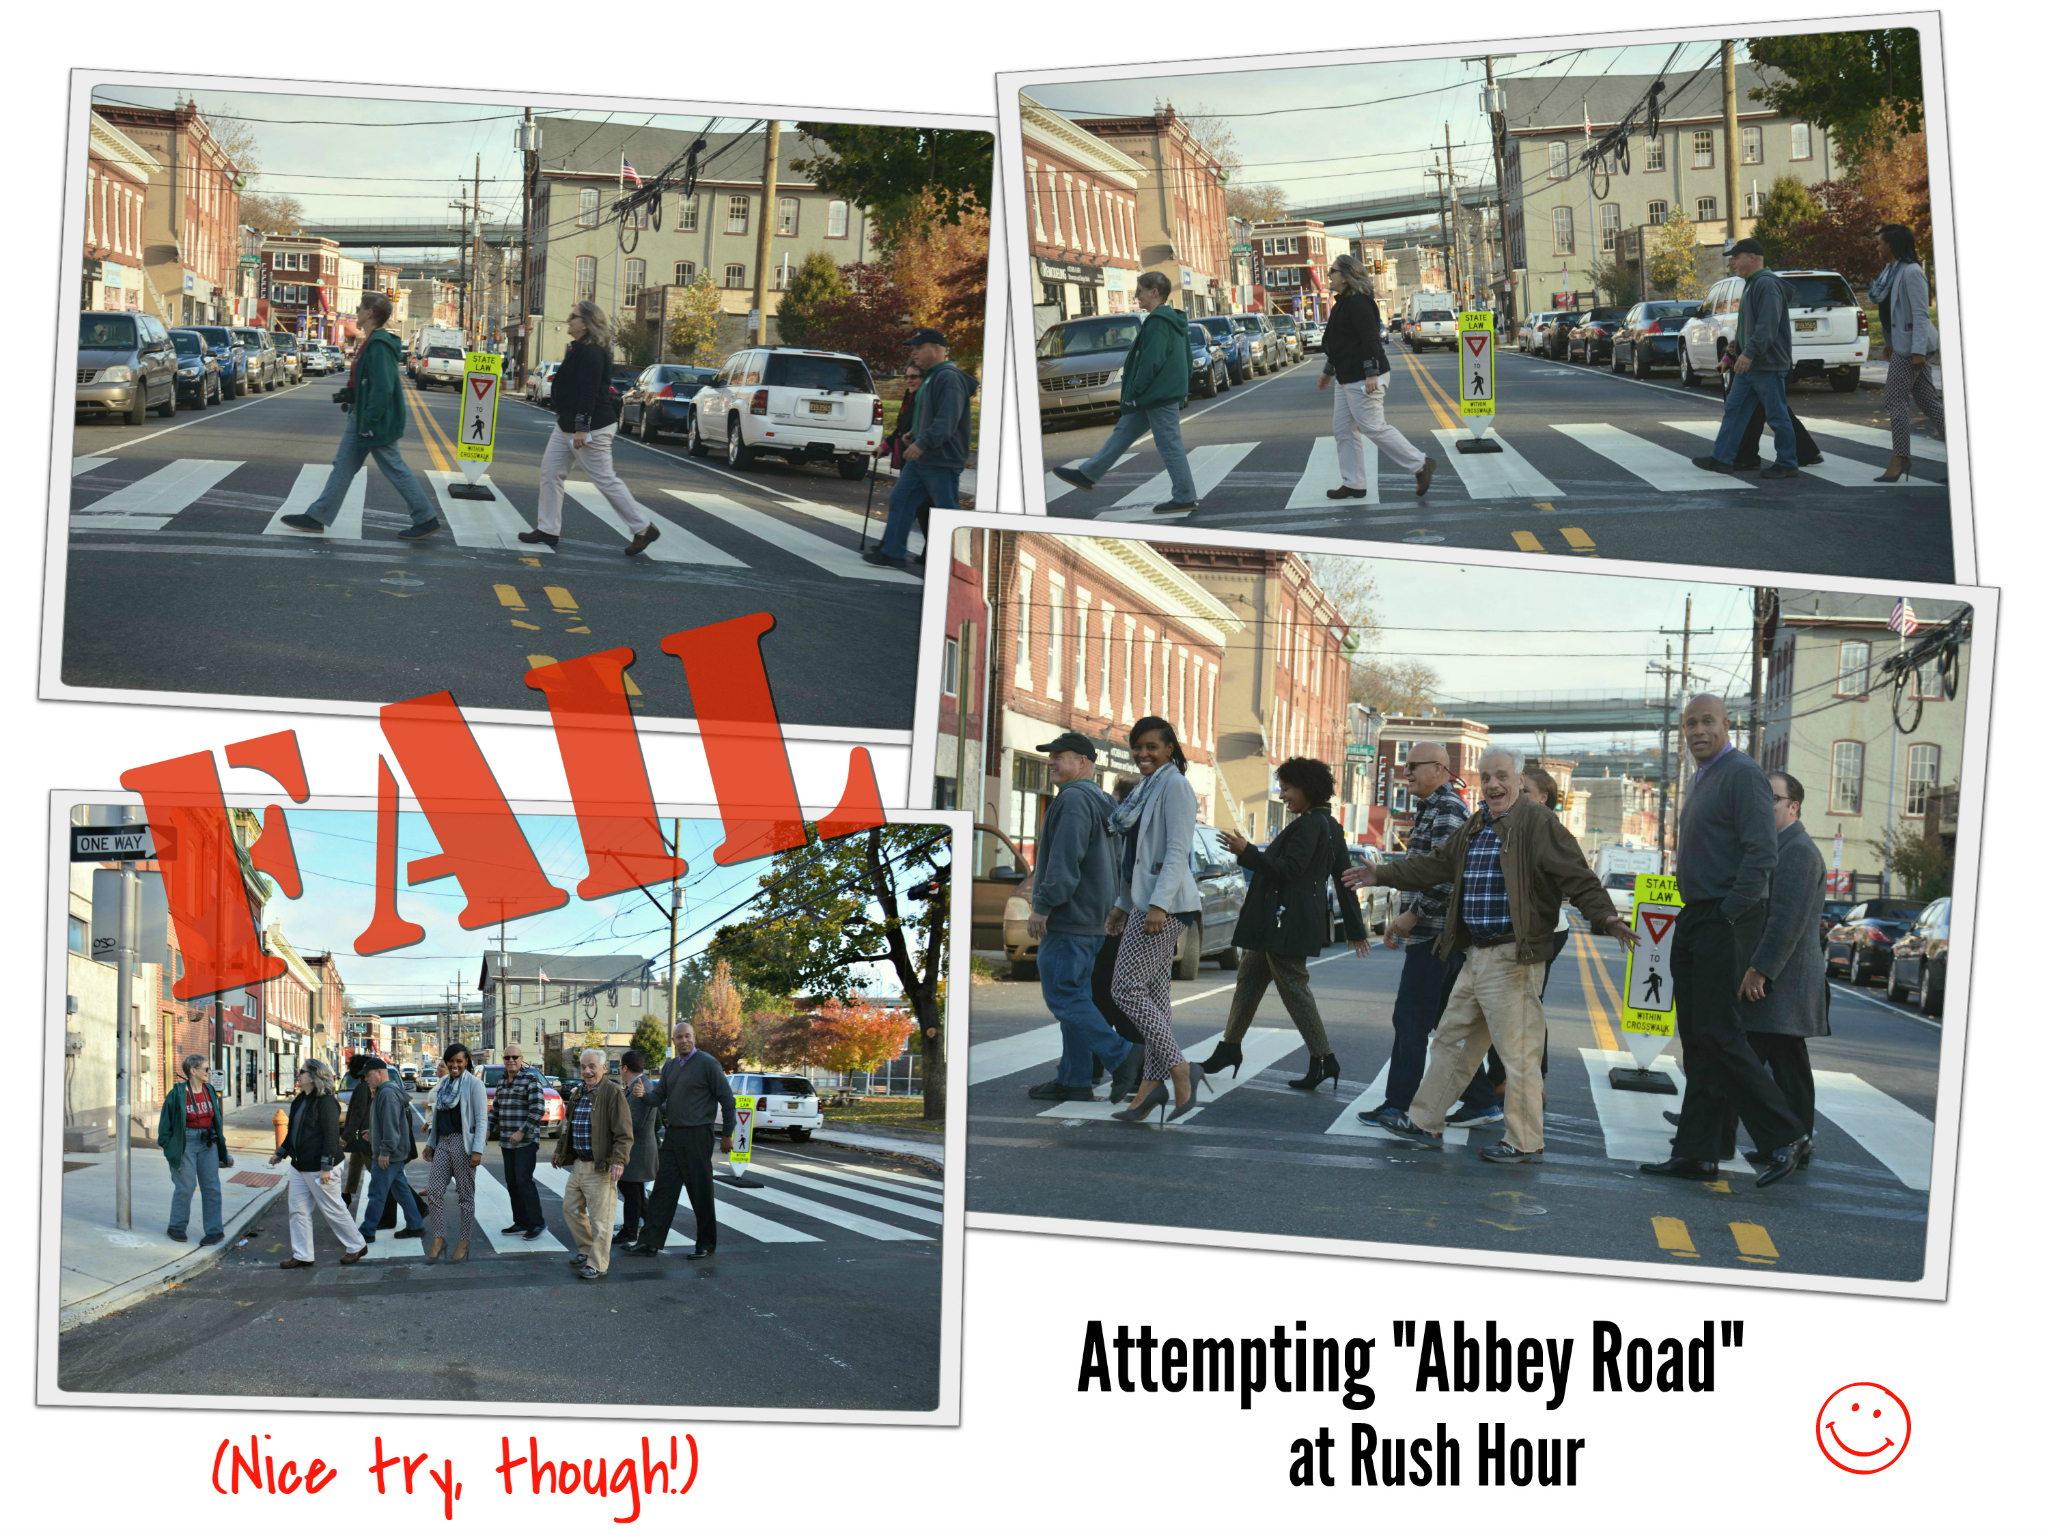 eastfallslocal-collage-attempting-abbey-road-at-rush-hour-fail-smile